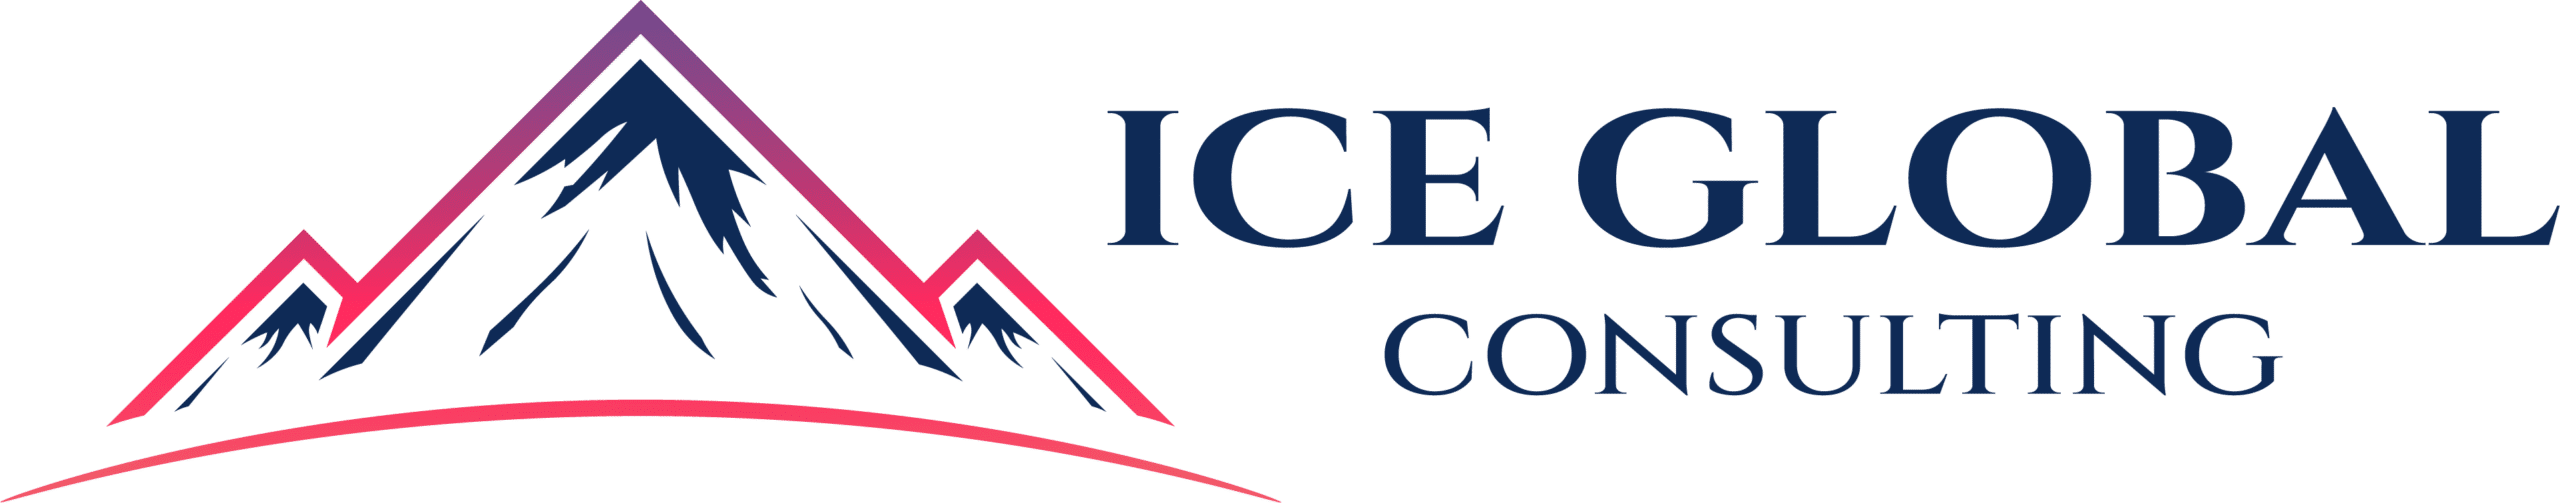 ICE Global Consulting, Inc.